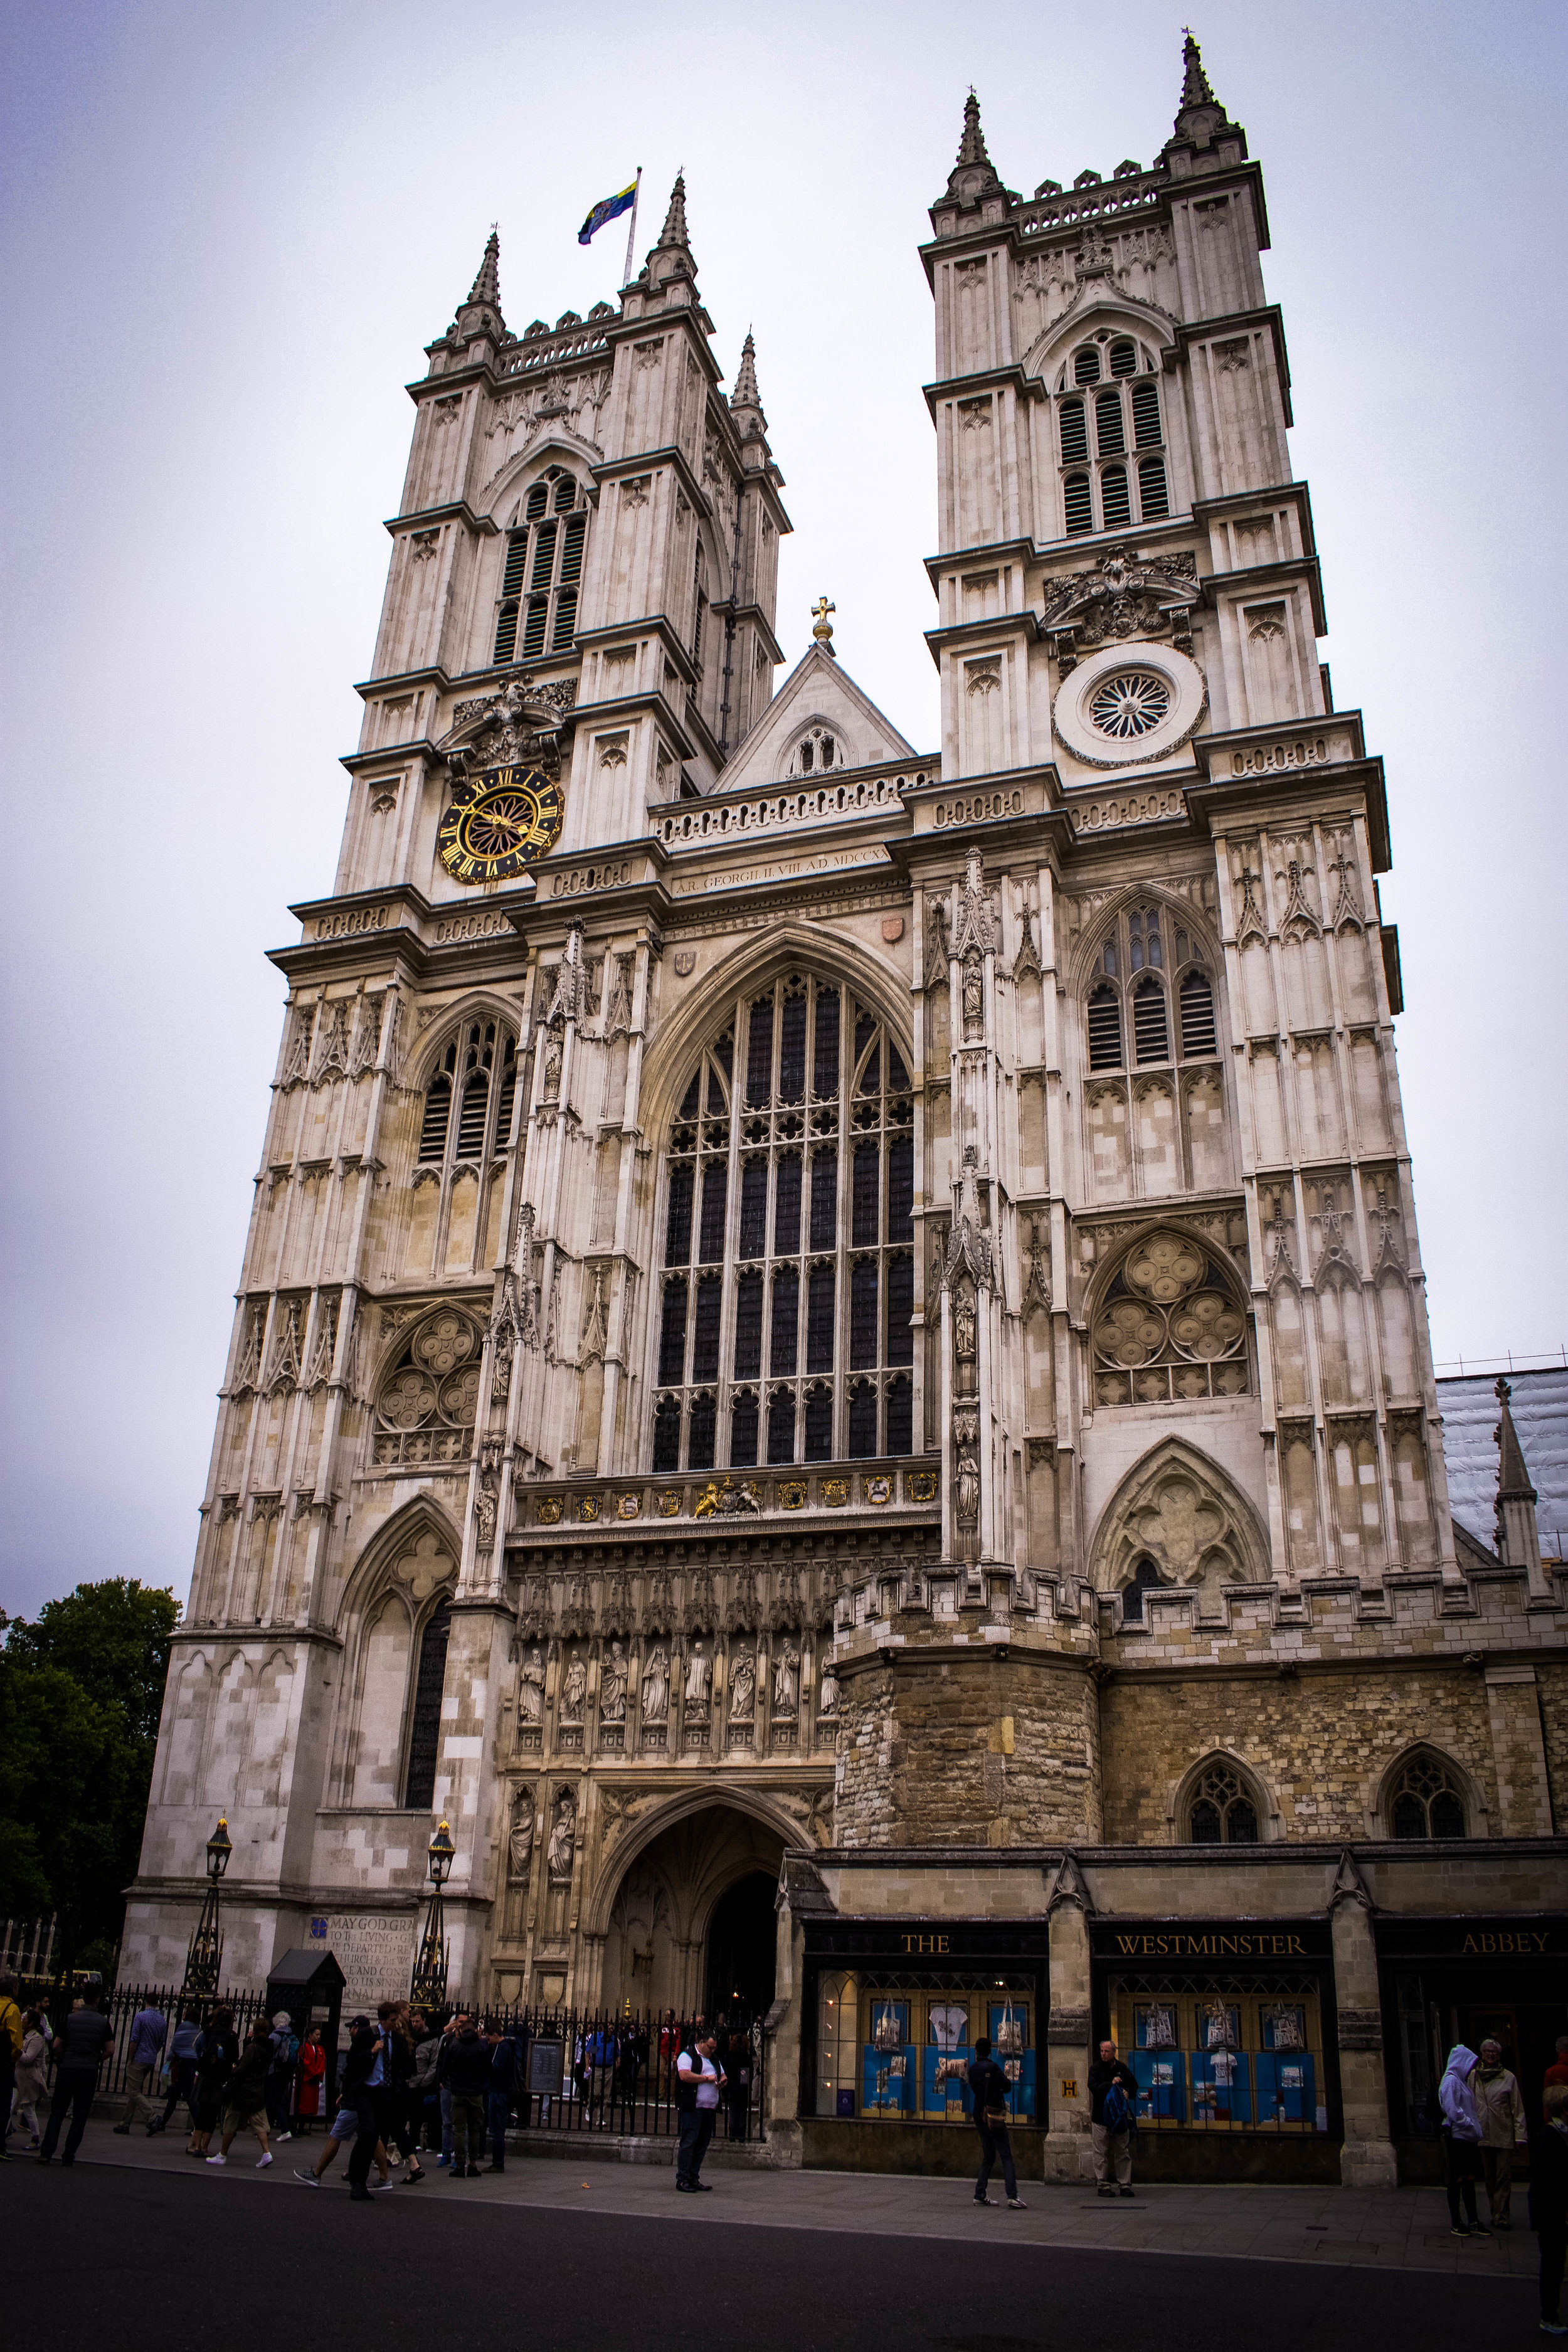 3. Westminster Abbey -